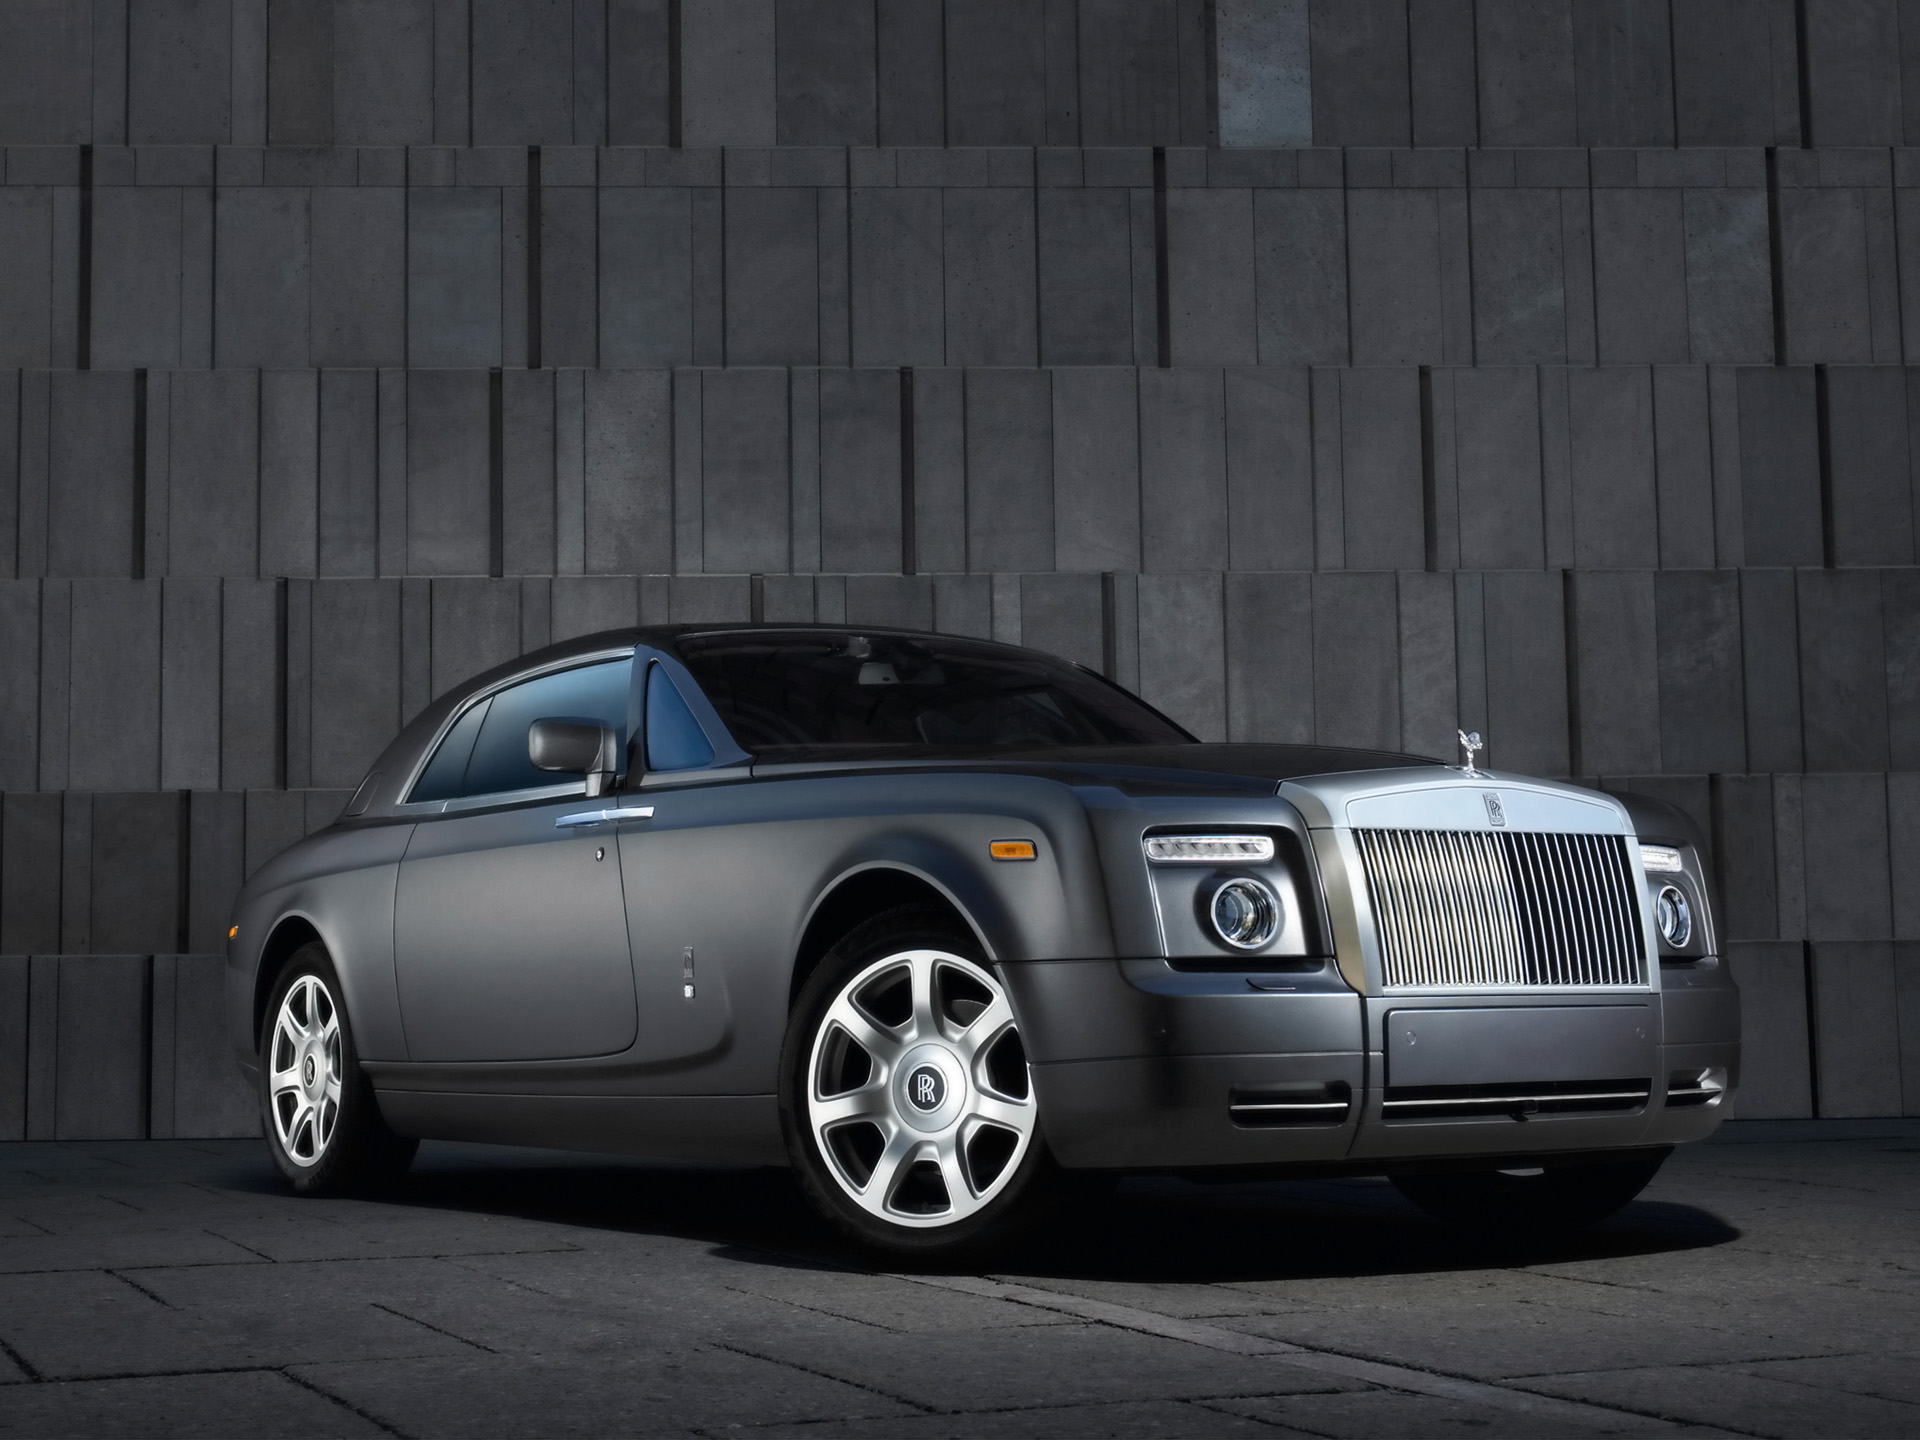 2011 Rolls royce Phantom Coupe #8